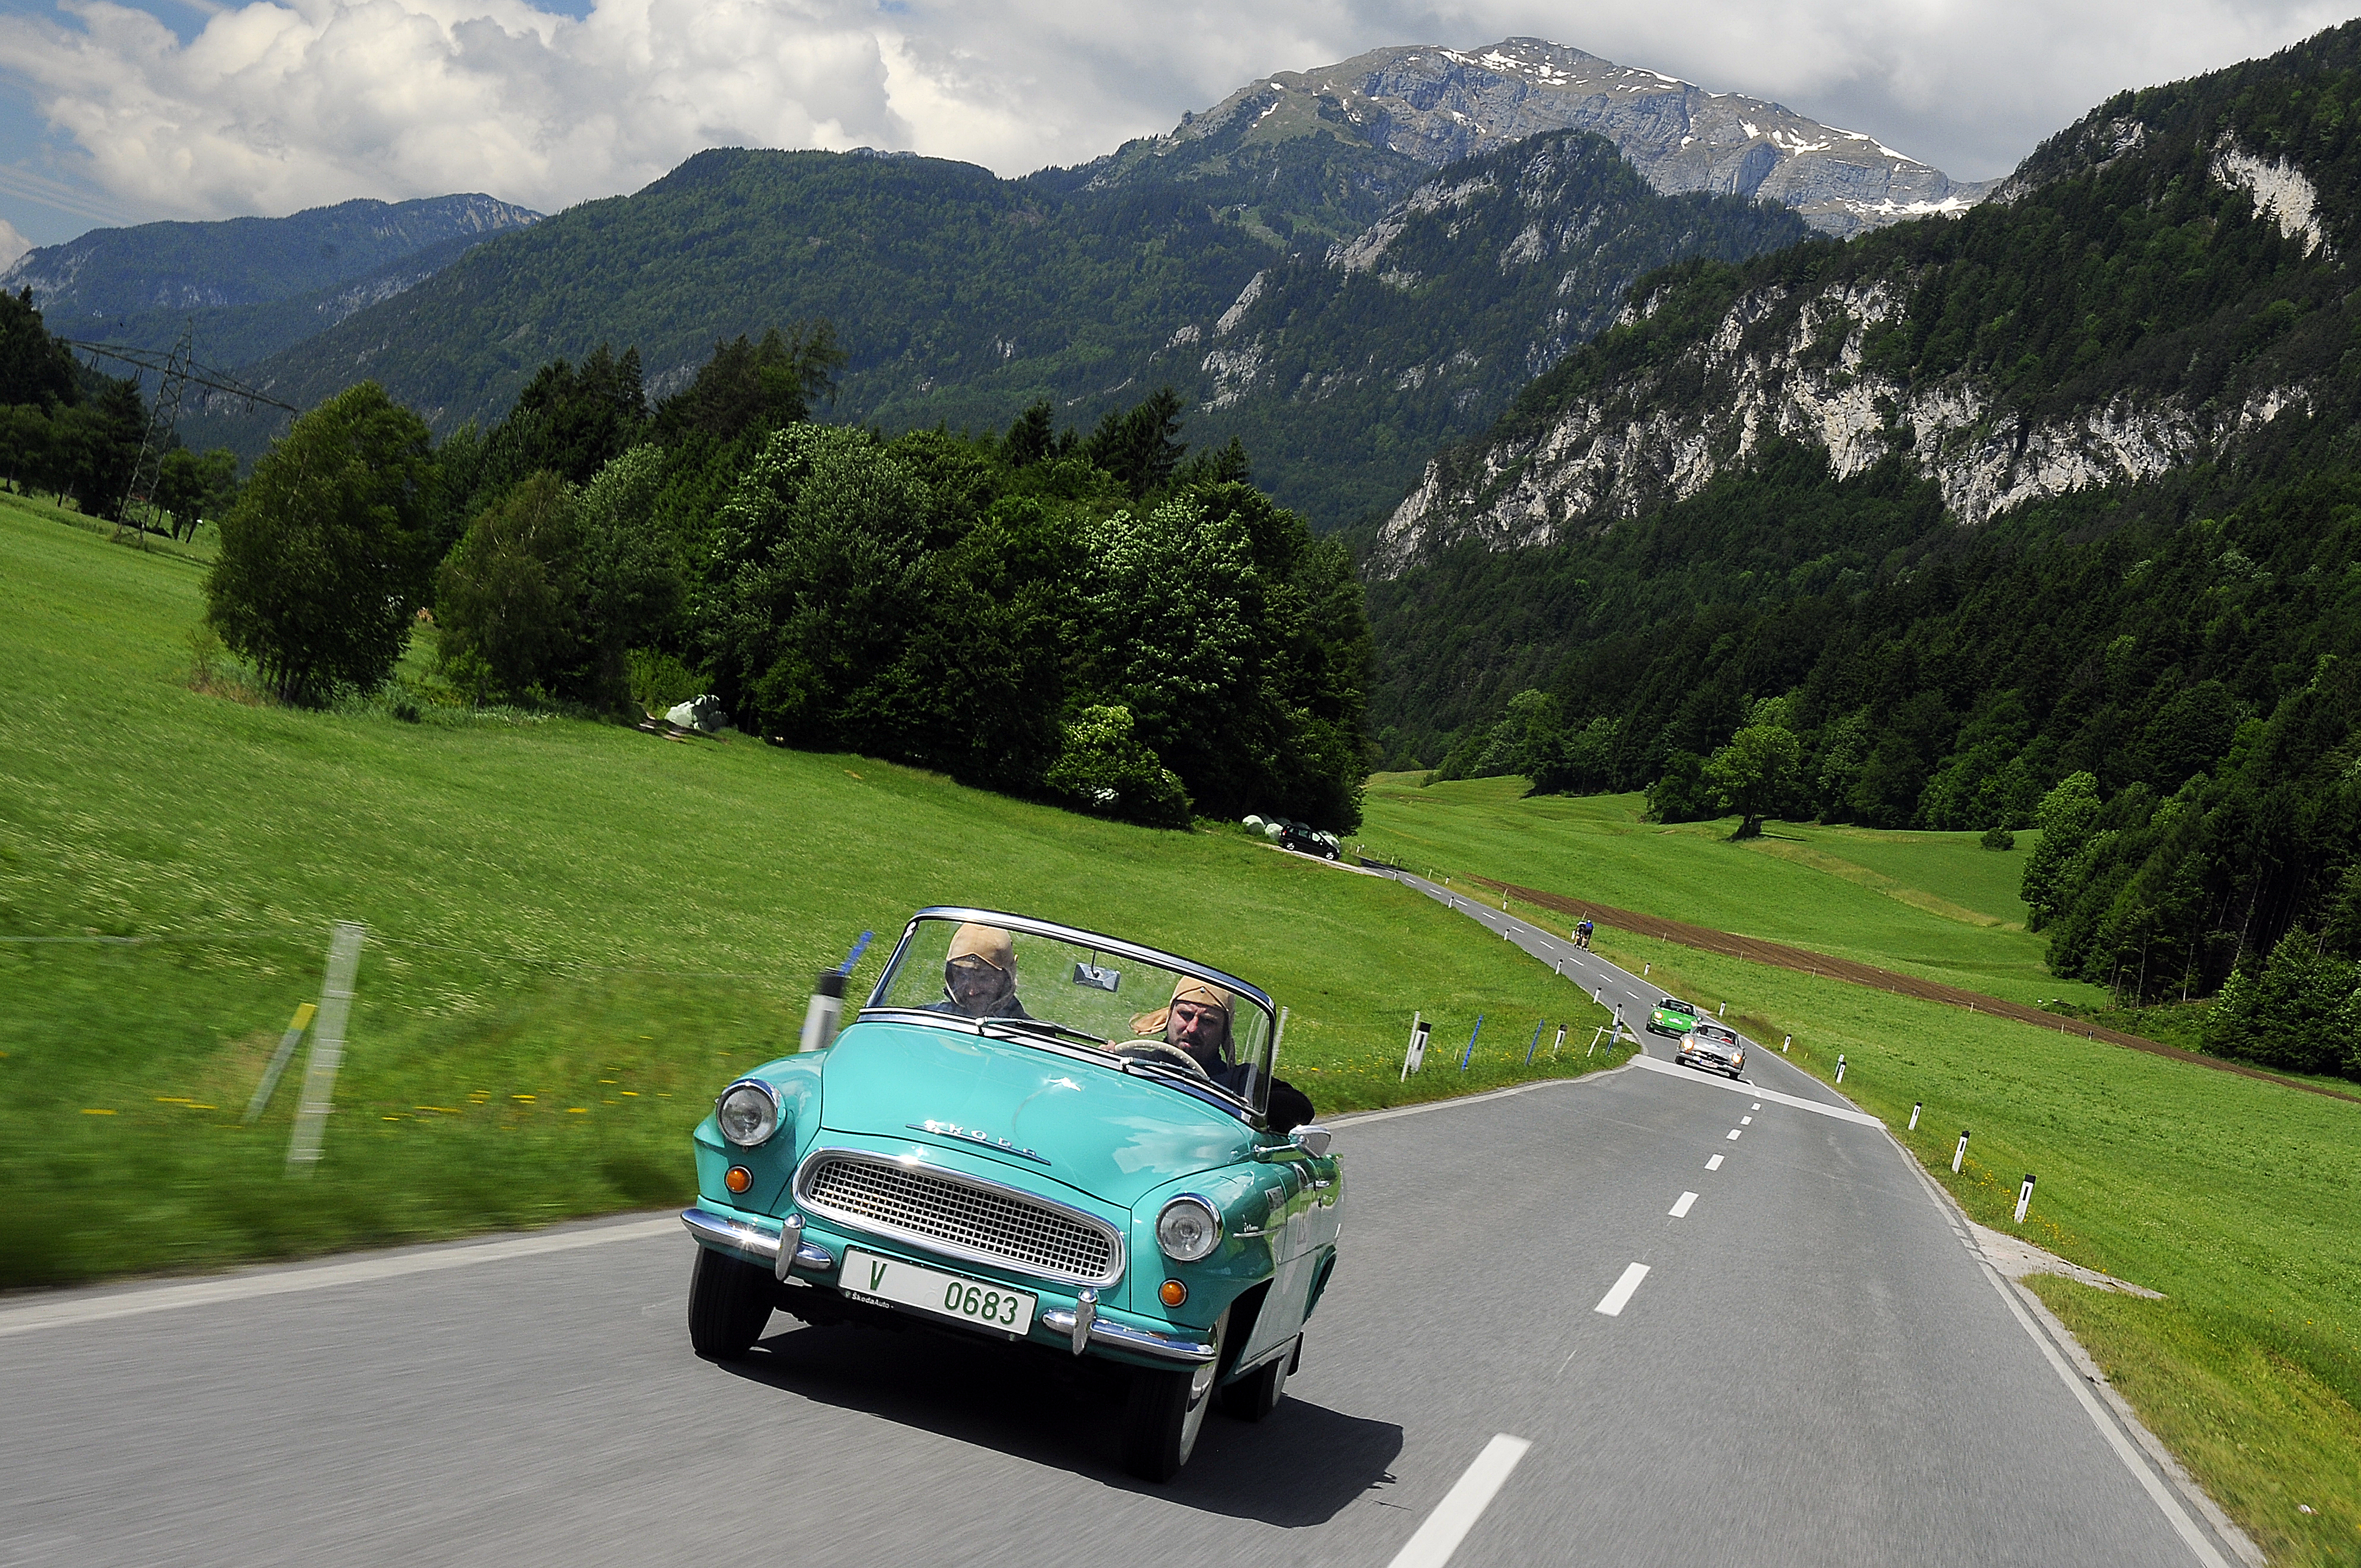 Vintage Cars Alpine Scenes ŠKODA Sends Two Cult Cars To The - Auto classic cars